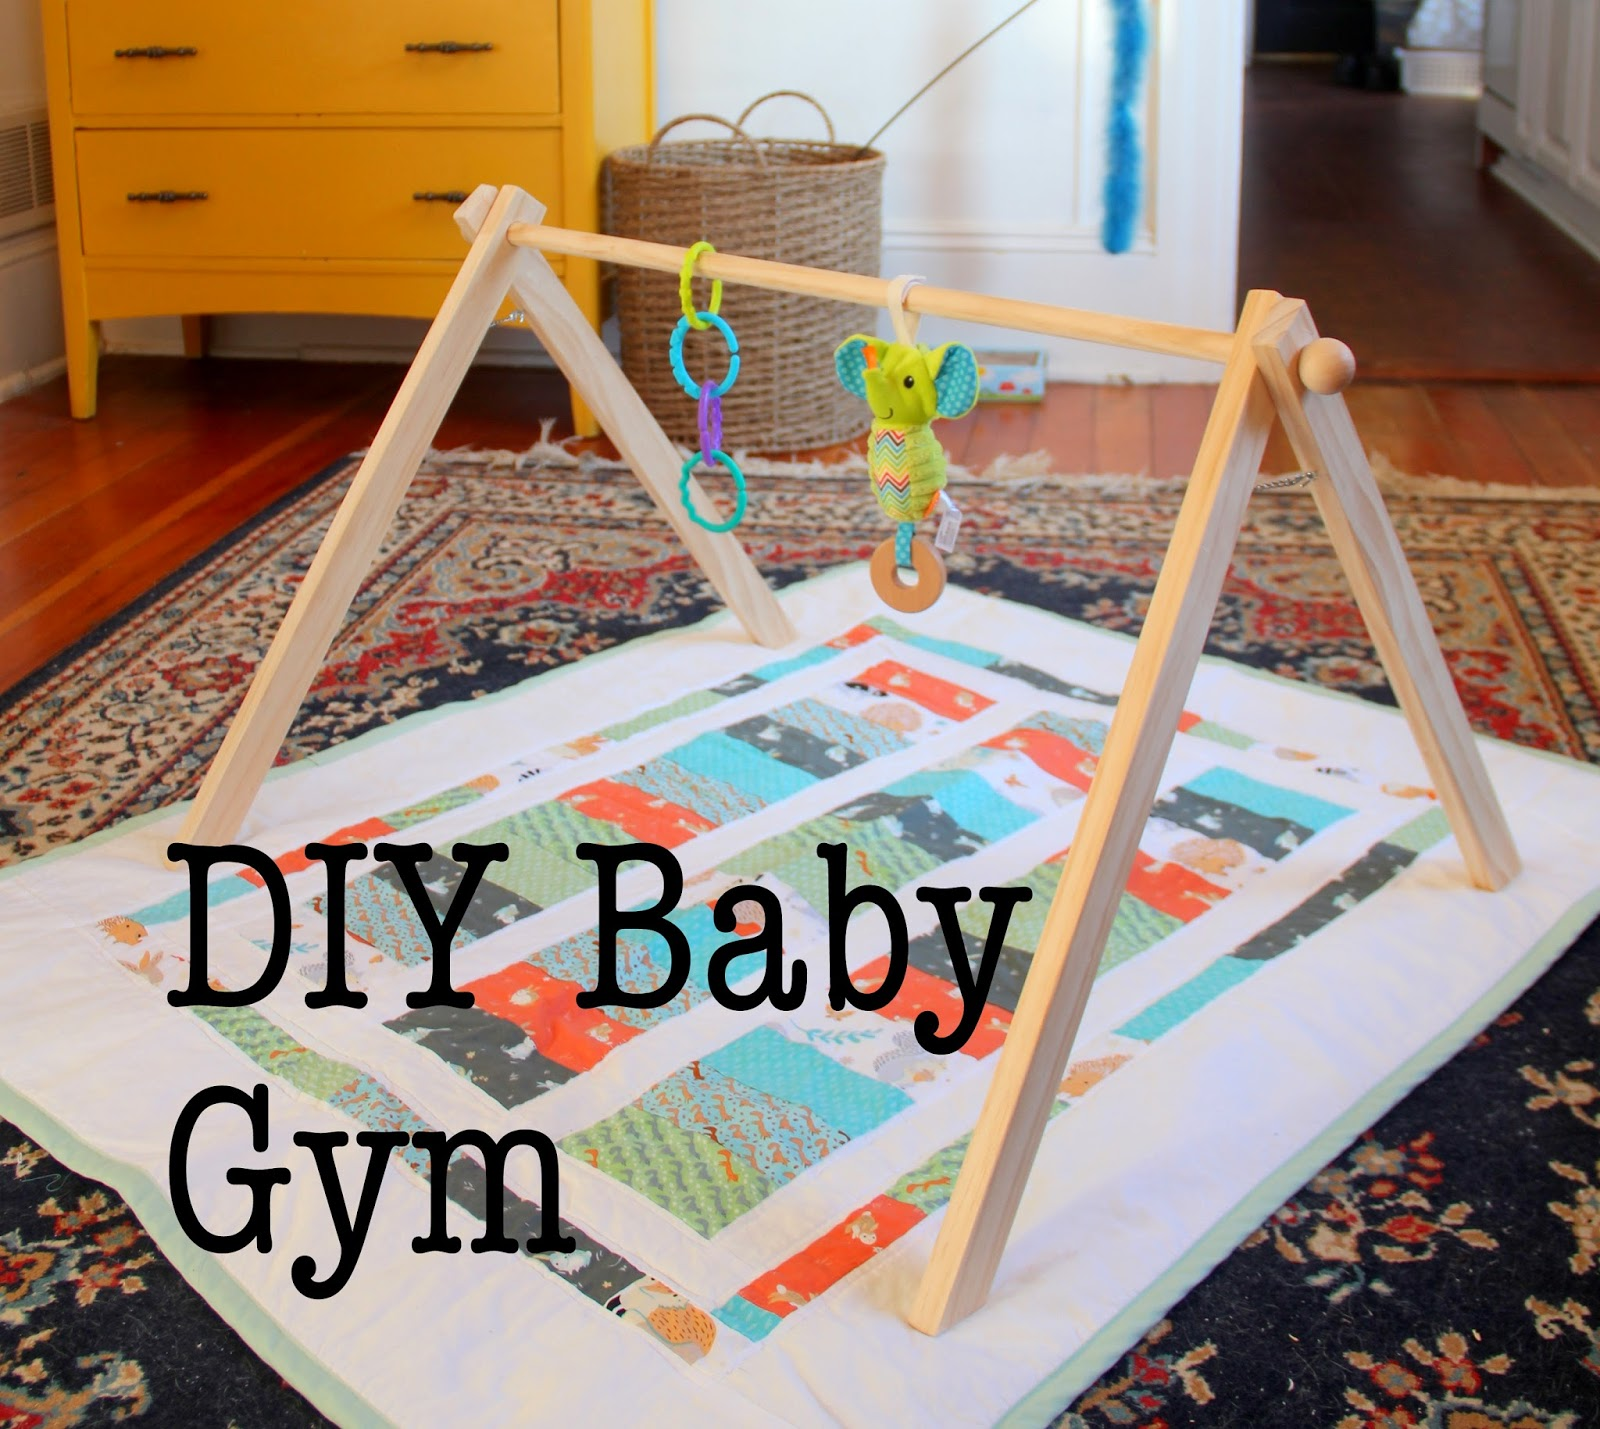 Eak A House Diy Baby Gym